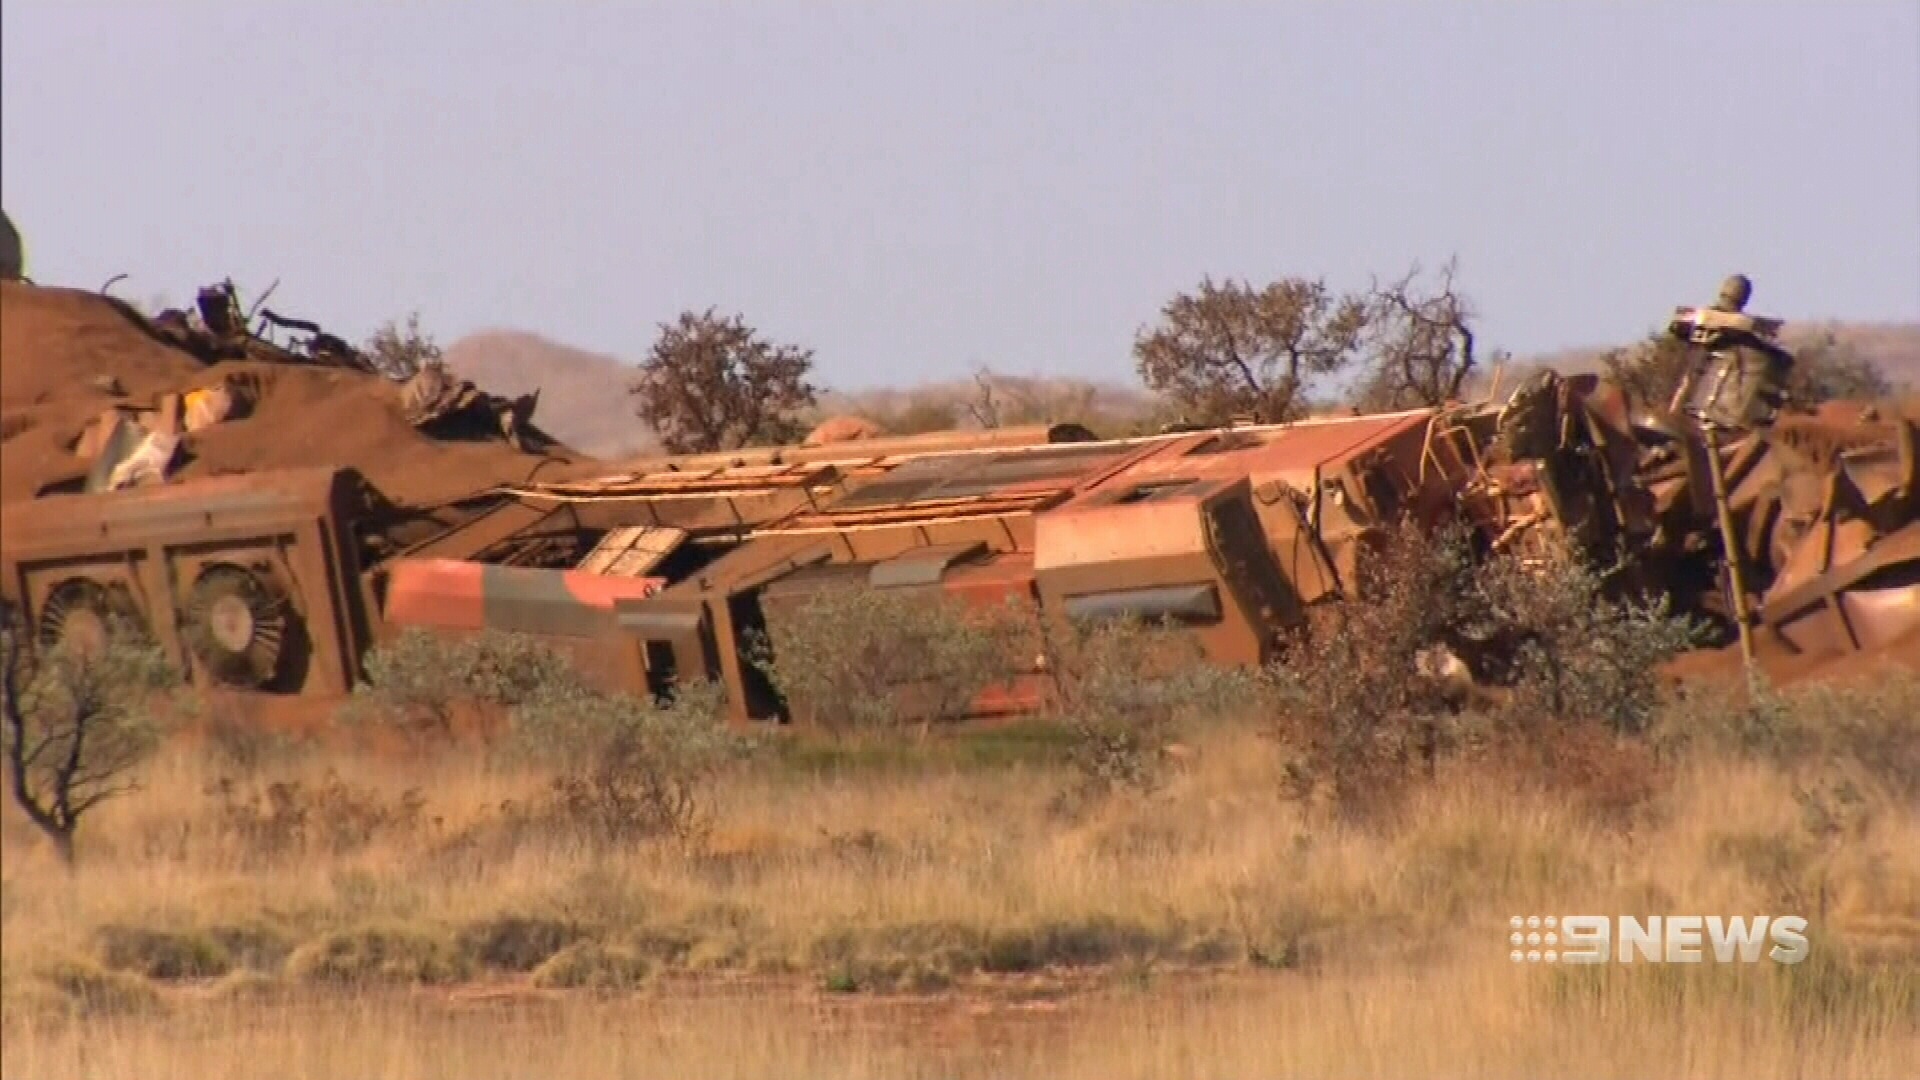 BHP Billiton train derailment: Runaway carriages could cost $50m in